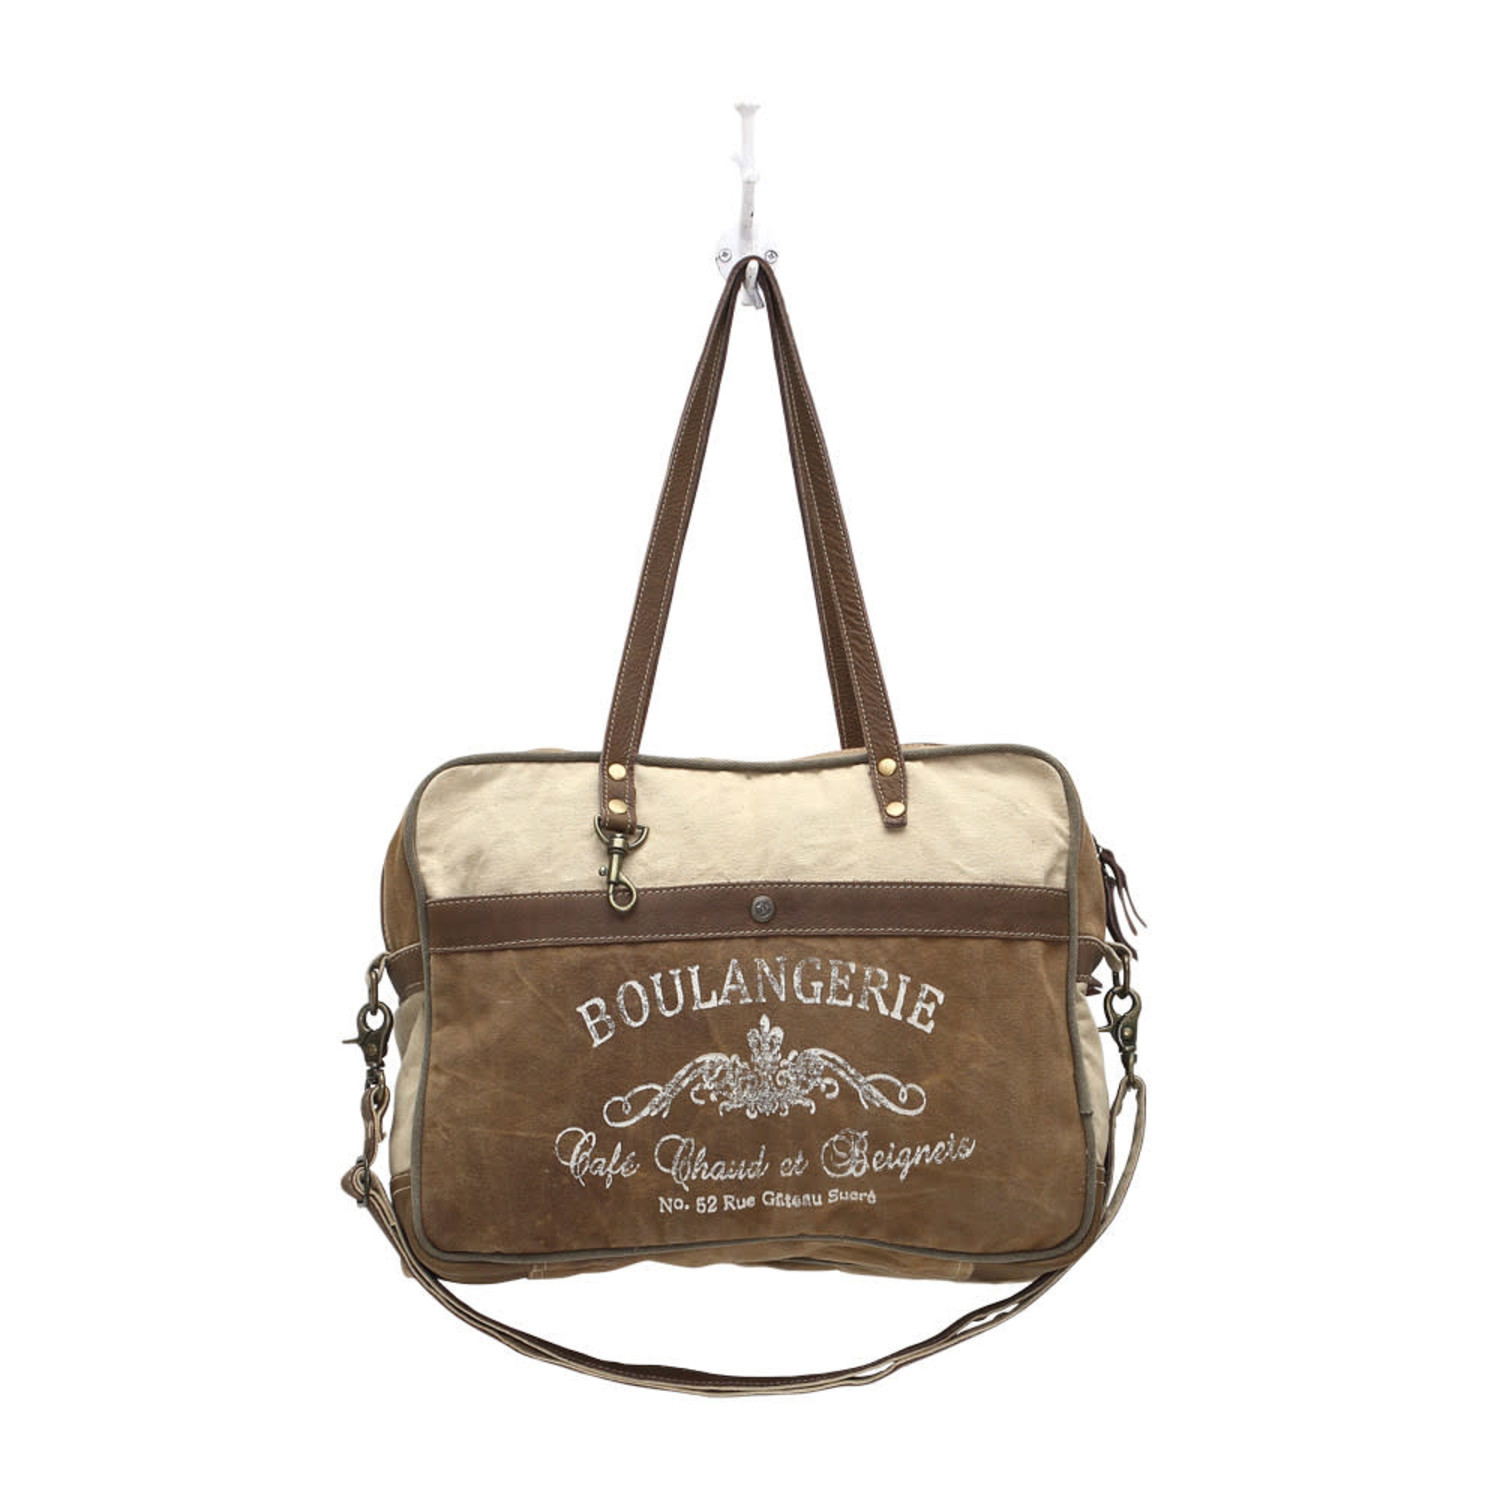 Myra Messenger Bag Boulangerie Bella Casa Decor And Design It includes numerous zippered pockets to store items like an ipad mini, multiple card slots, with even more pockets to store a map, a guide book, and even a journal. myra bags messenger bag boulangerie